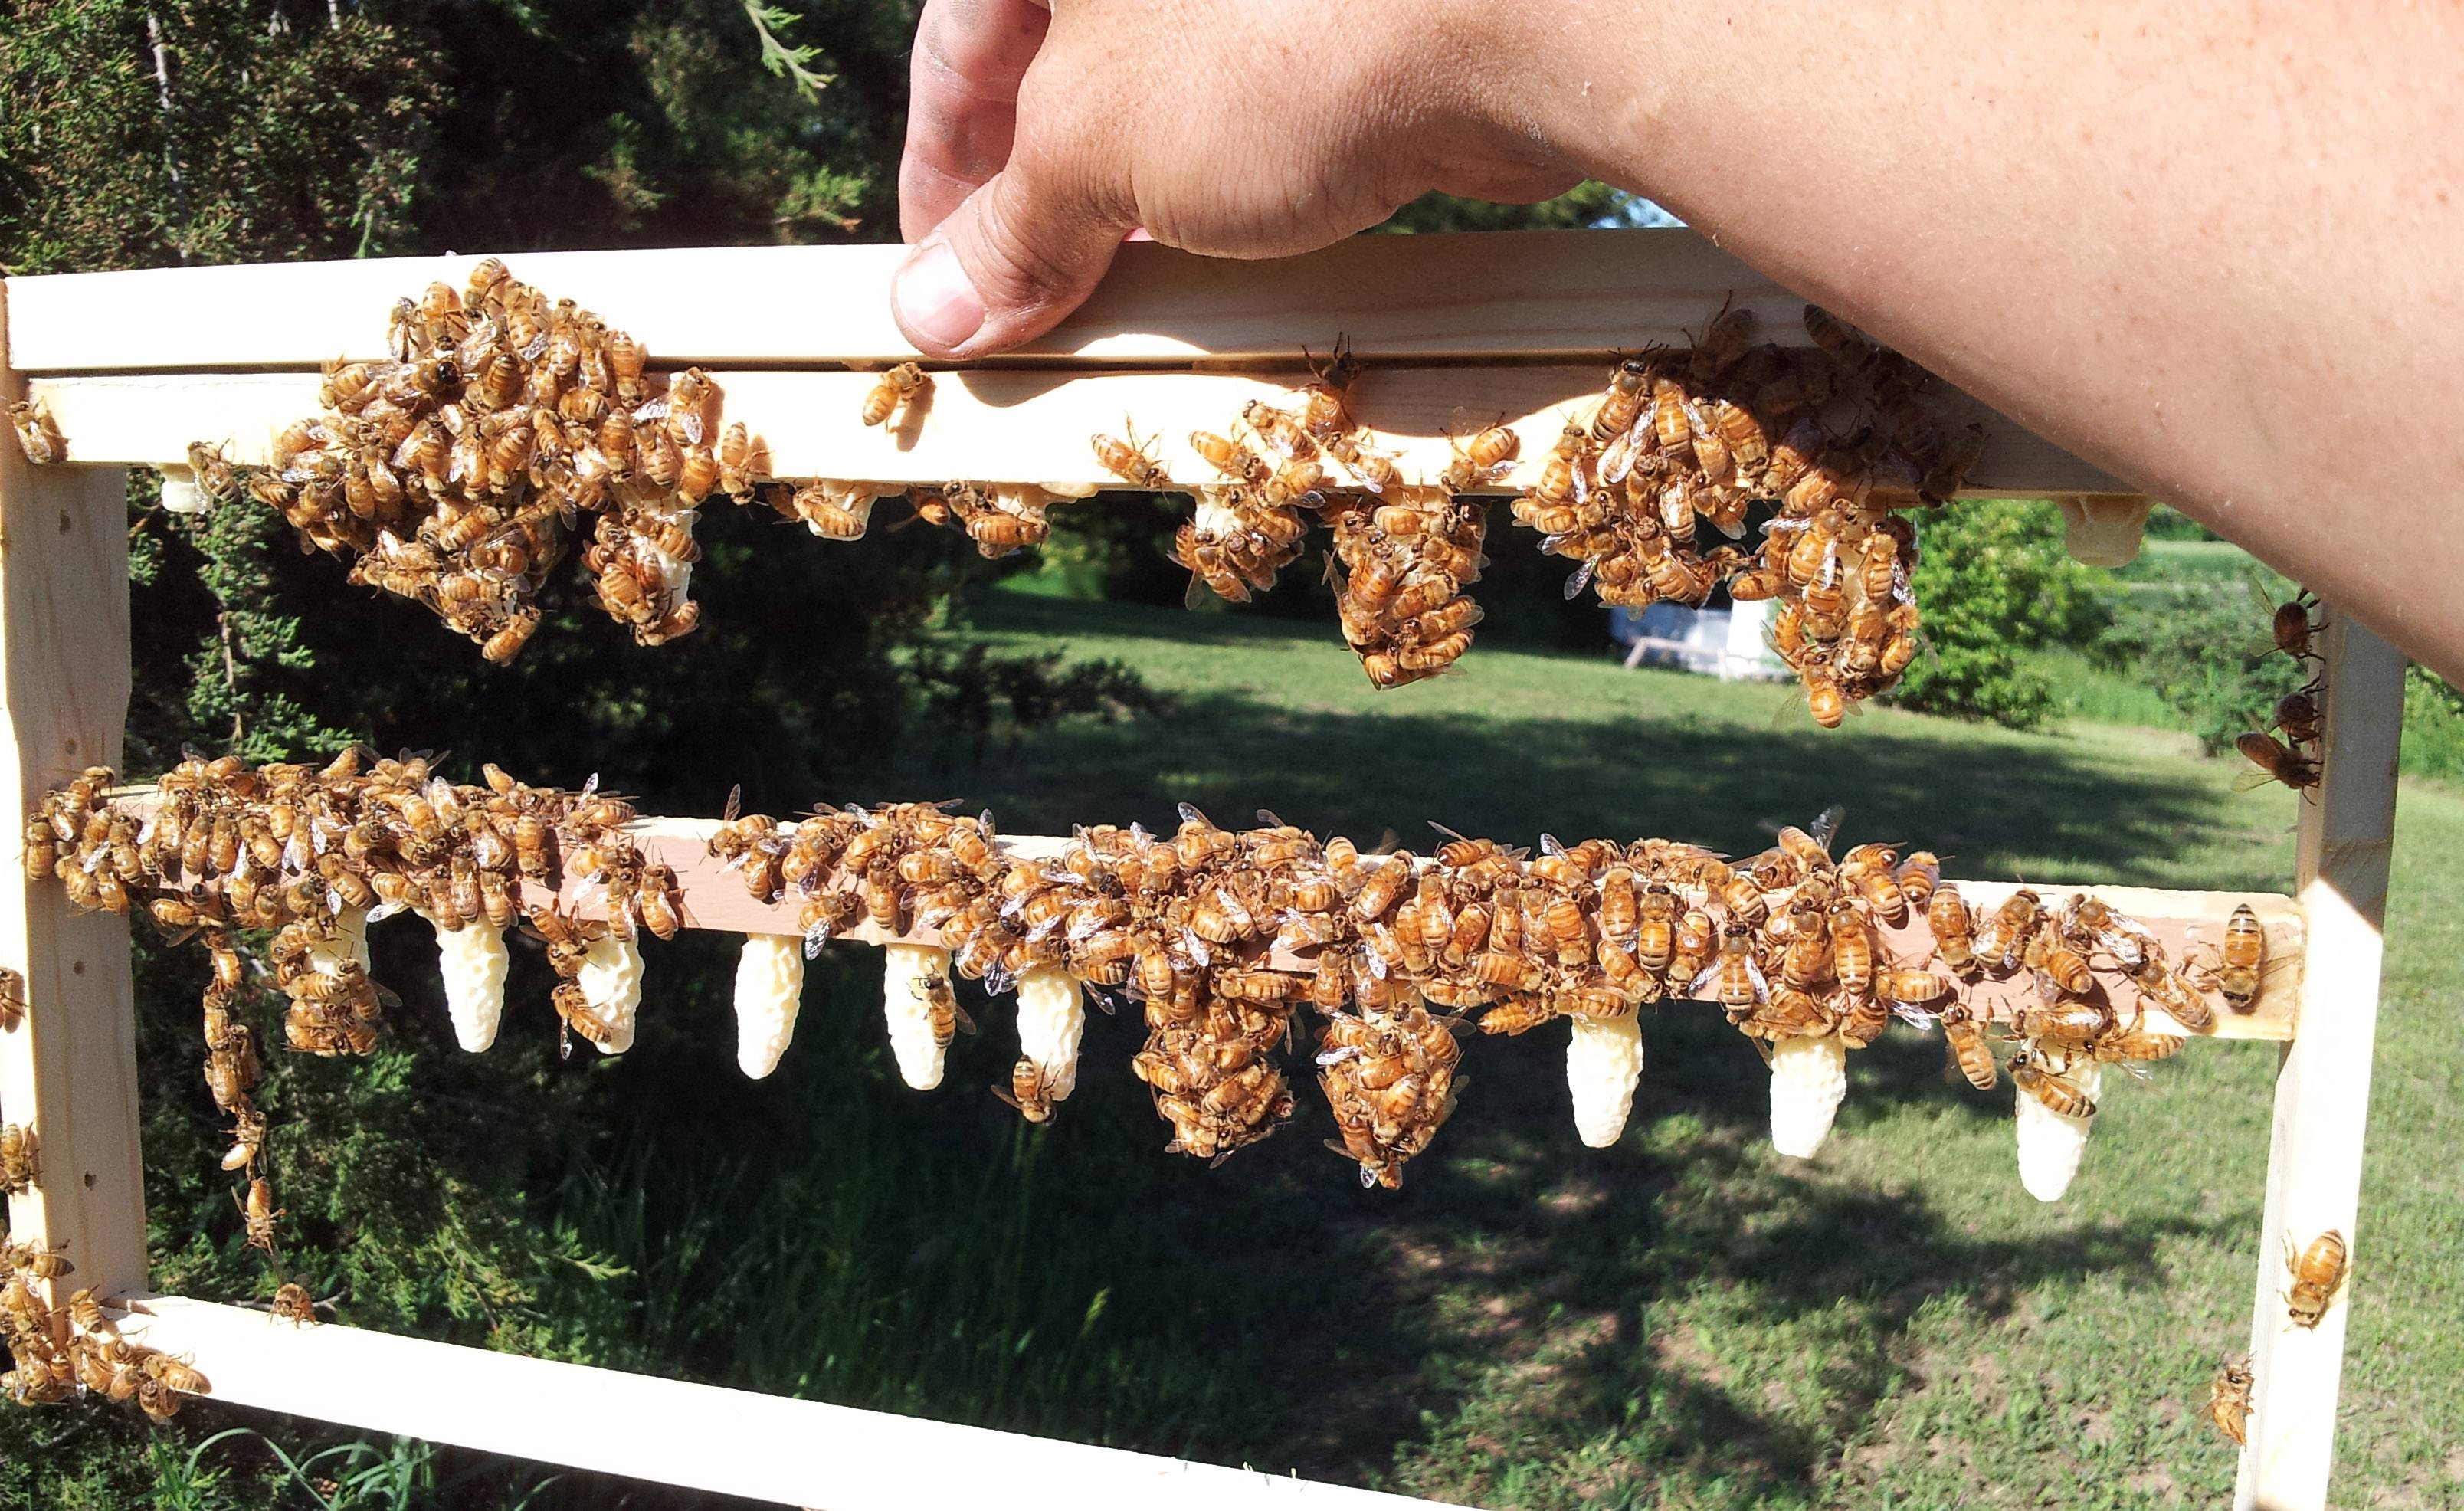 Al Wagner raises queen bees in Fox Lake.